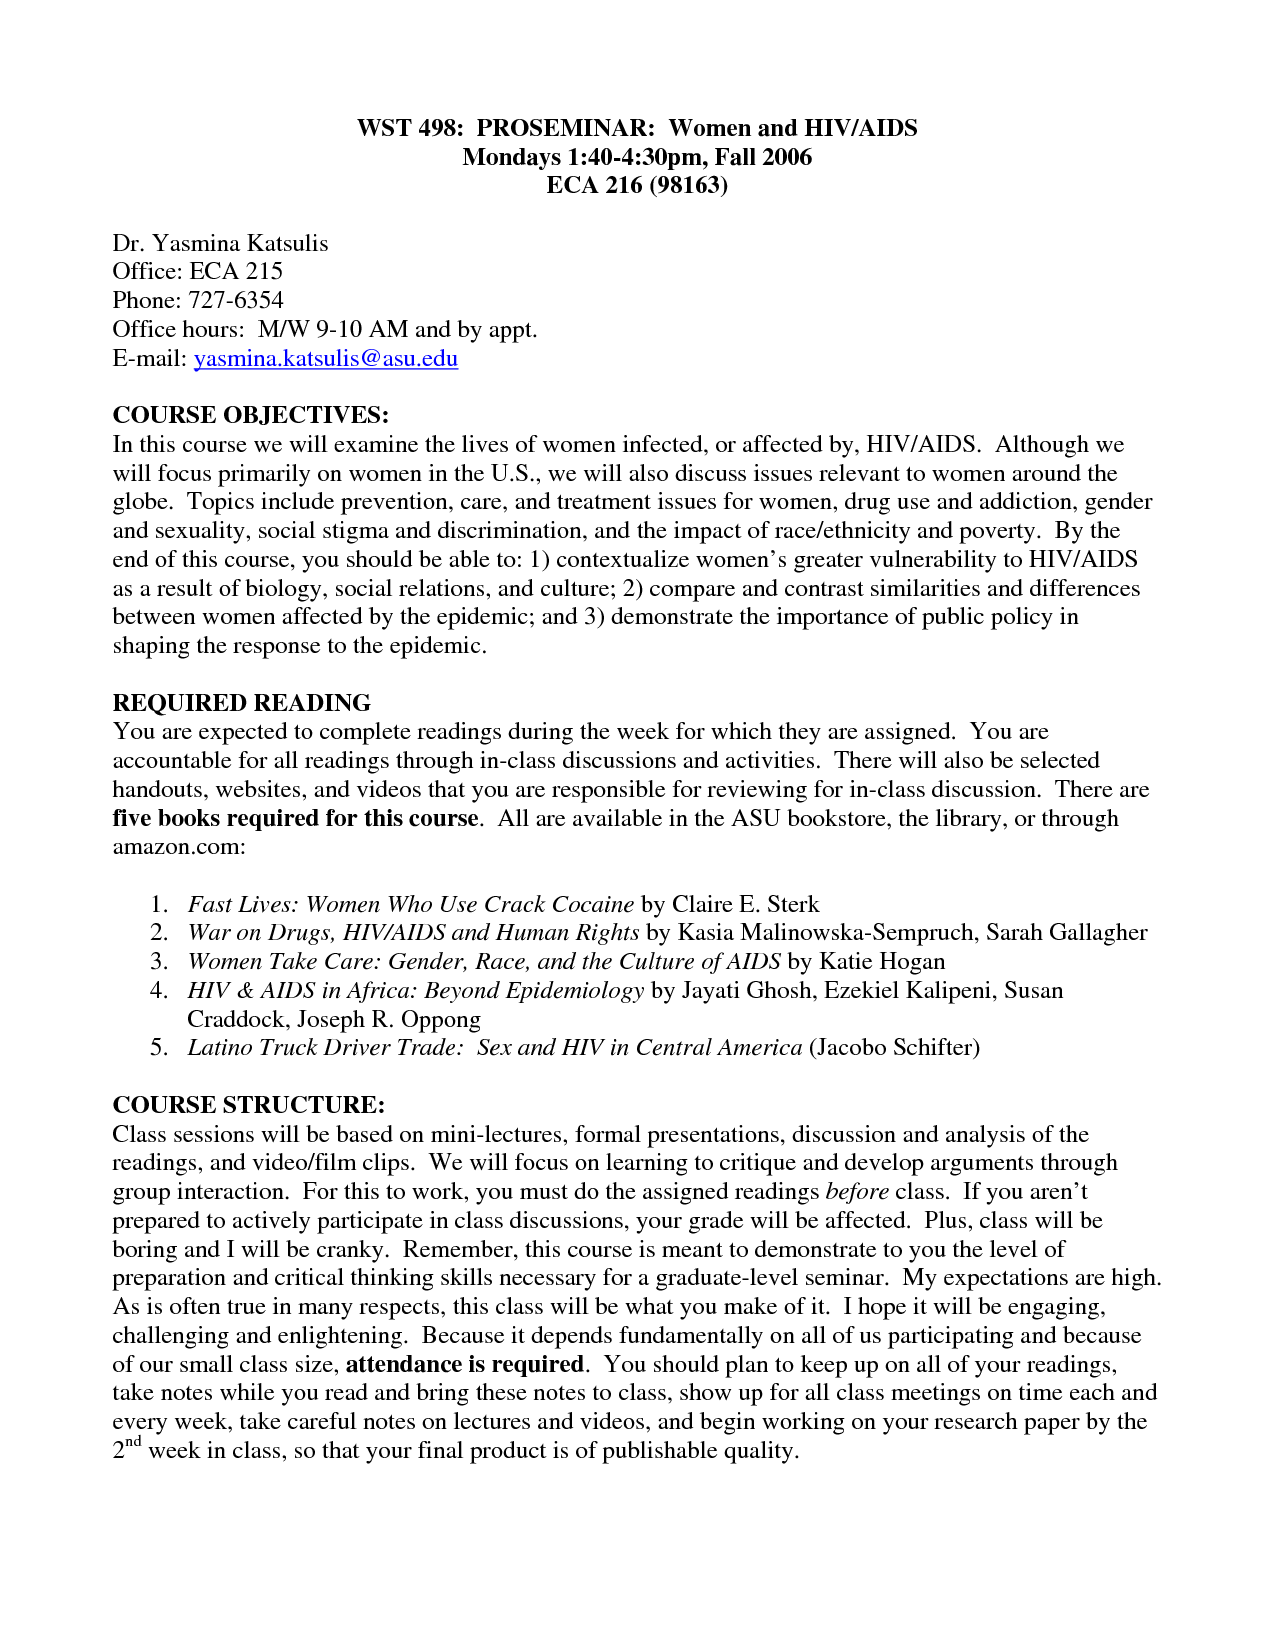 002 Research Paper Modest Proposal Topics For Essay Resume Boat Jeremyeaton Co Formidable A Full